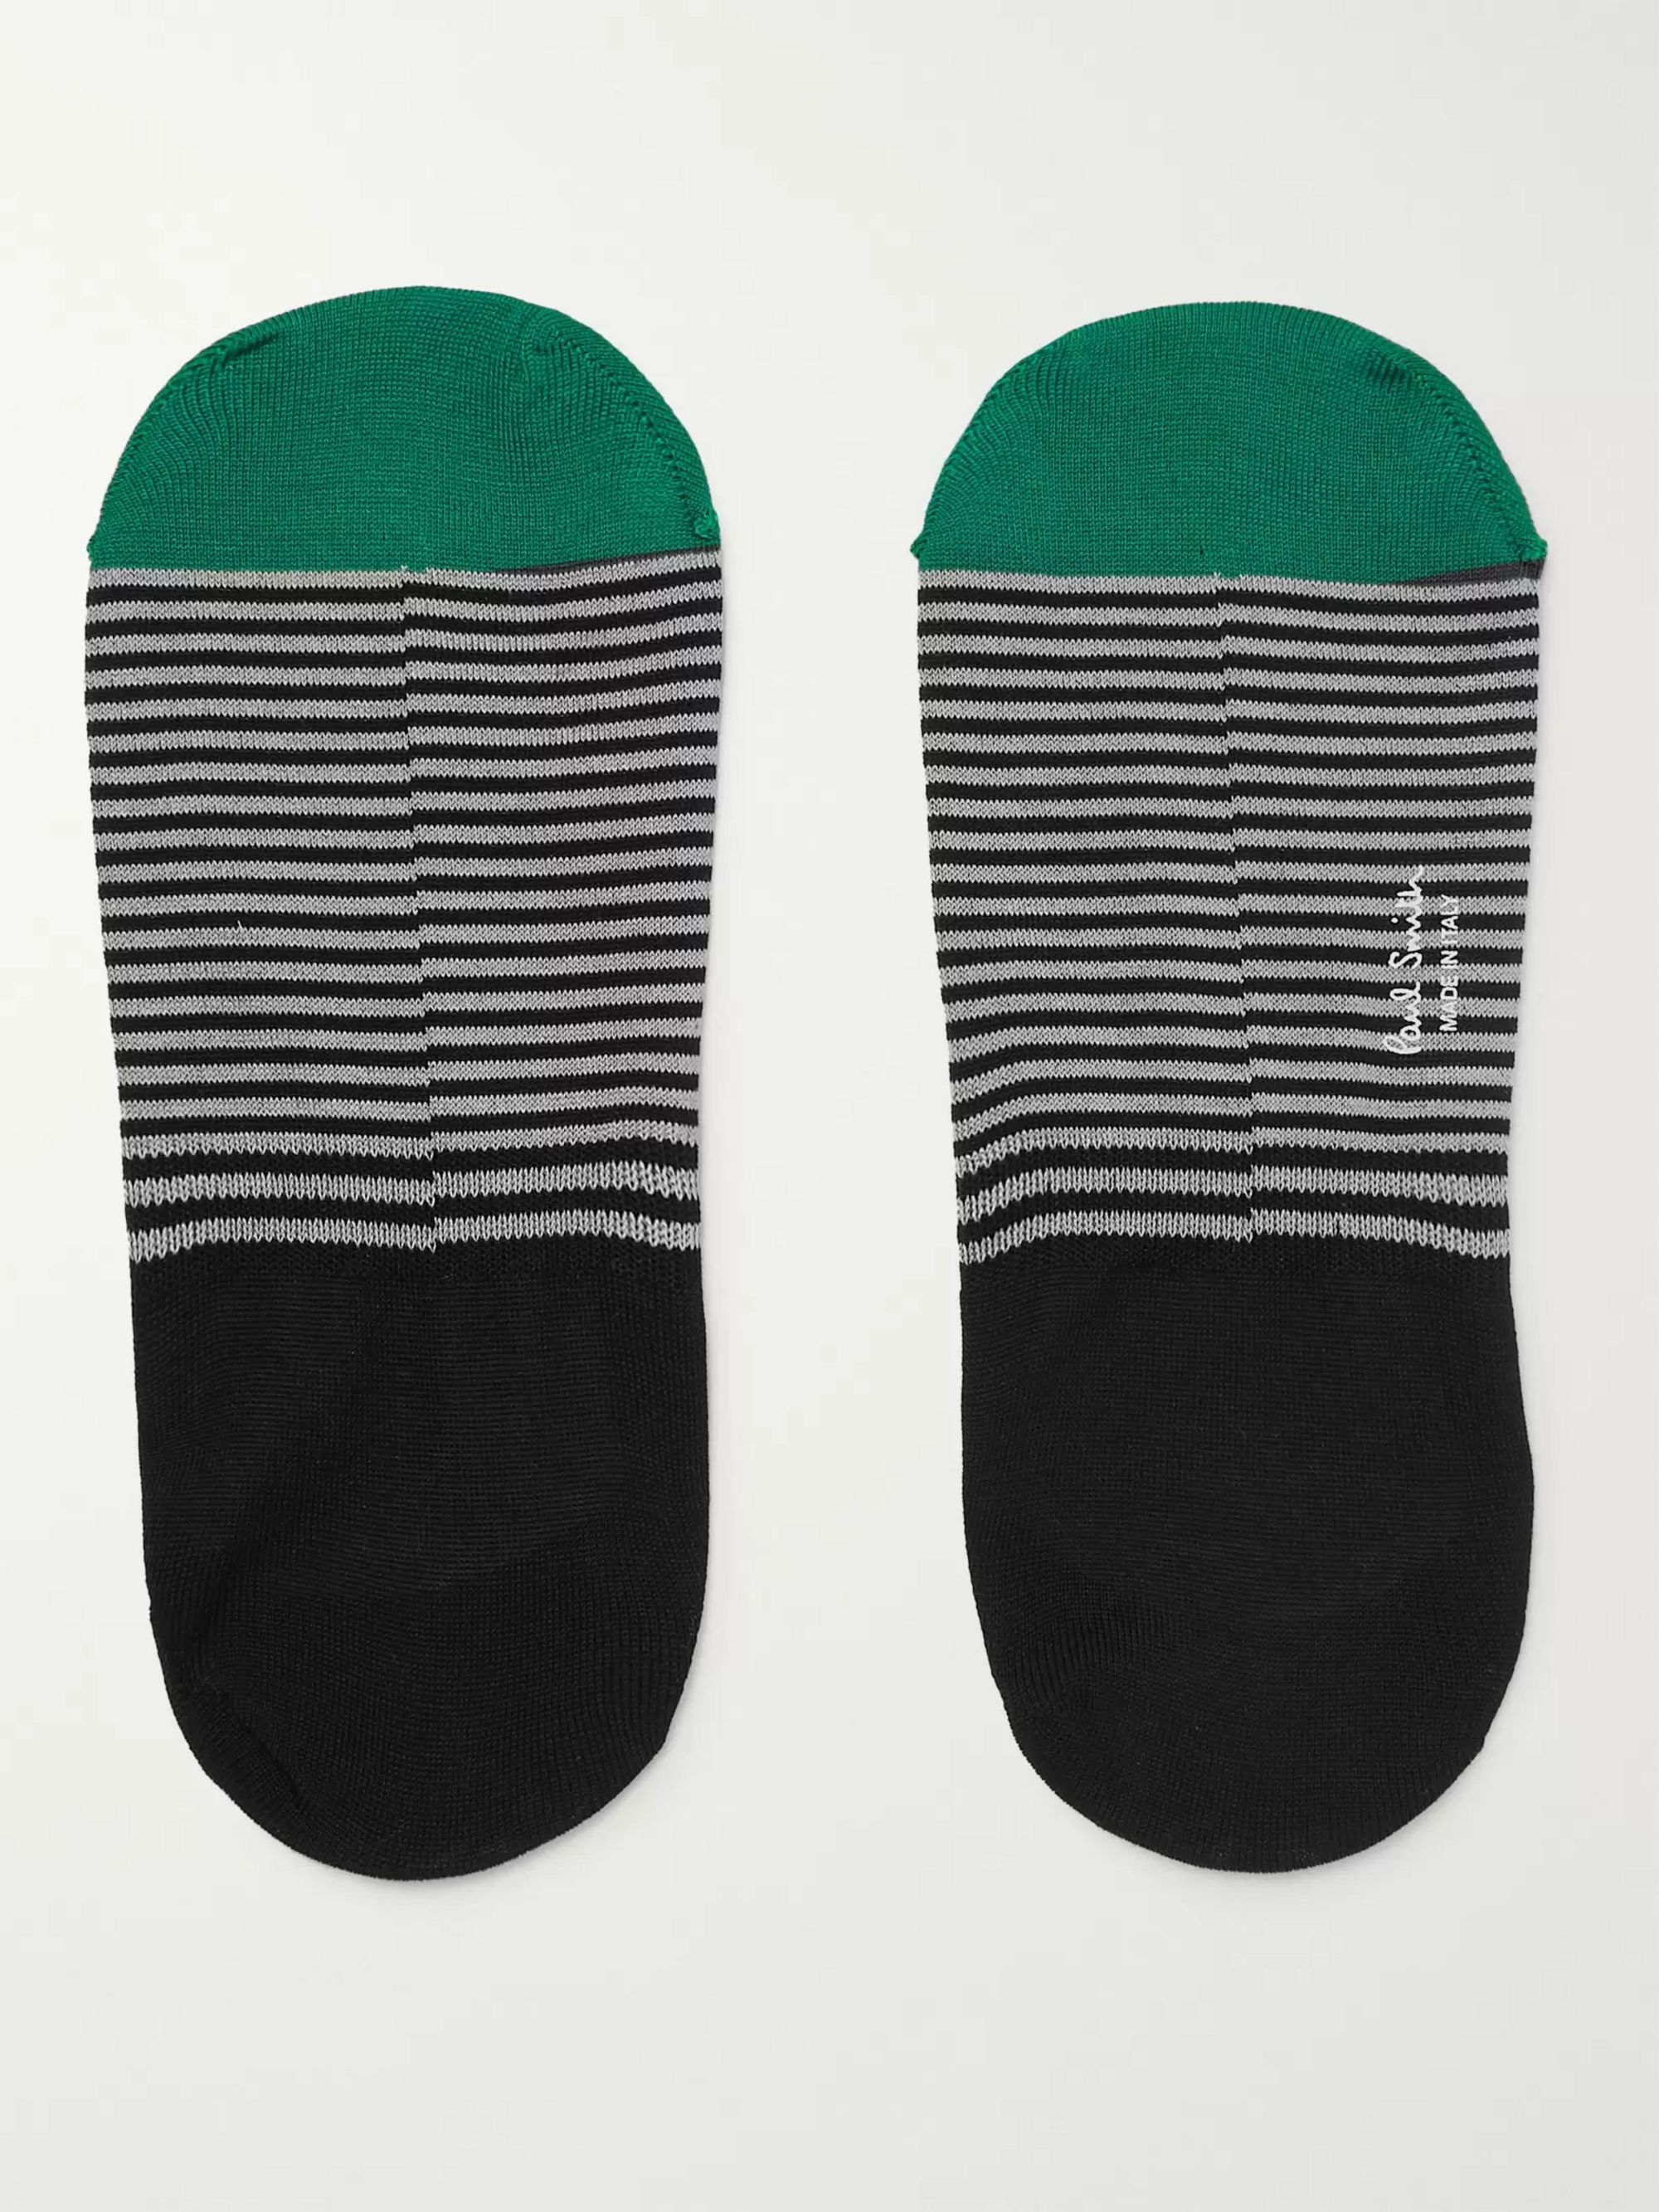 Paul Smith Striped Mercerised Stretch Cotton-Blend No-Show Socks